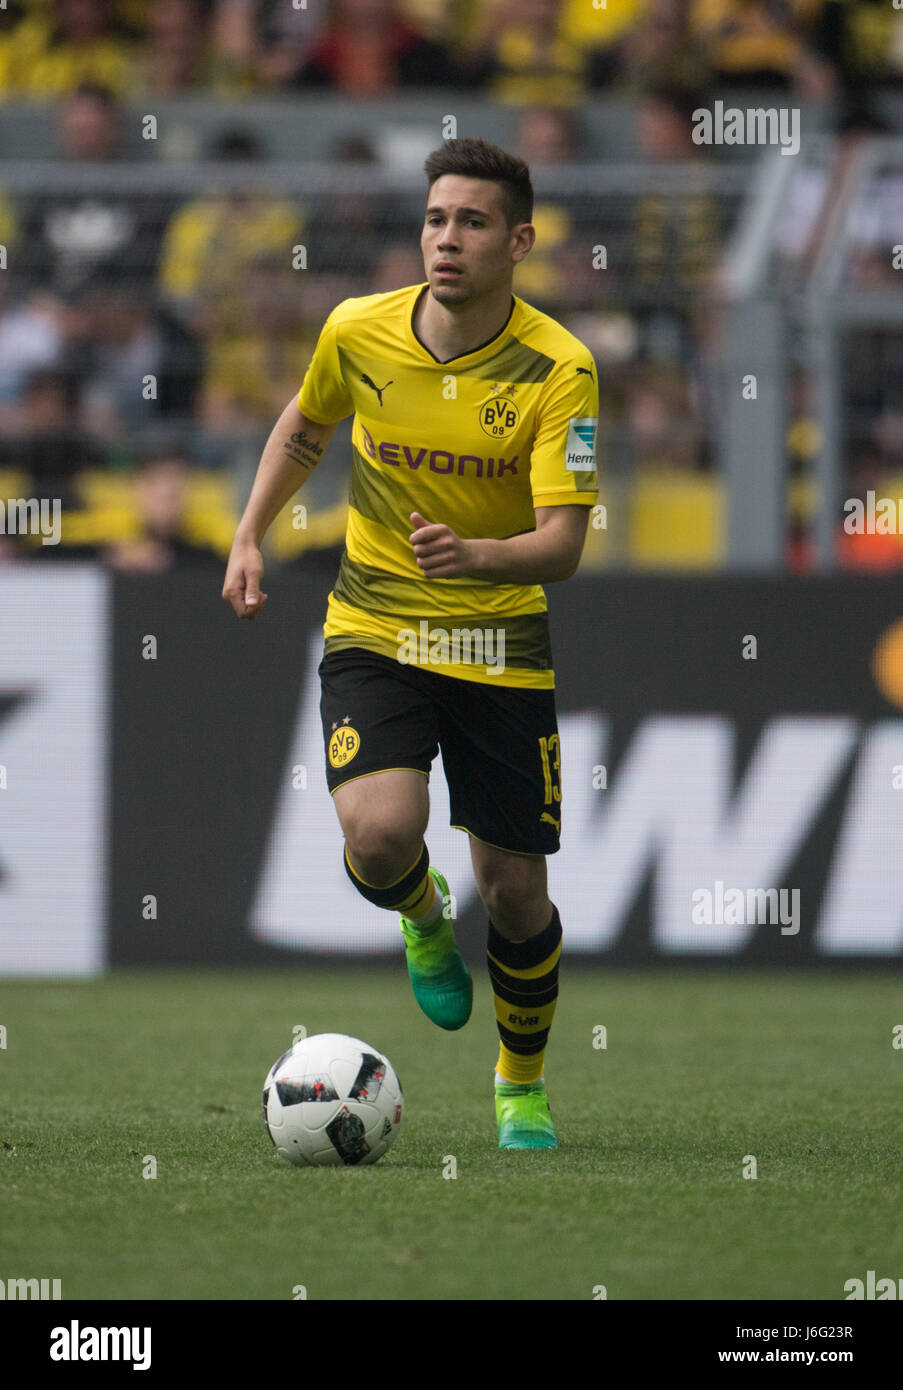 Dortmunds Raphael Guerreiro During Bundesliga Stock s